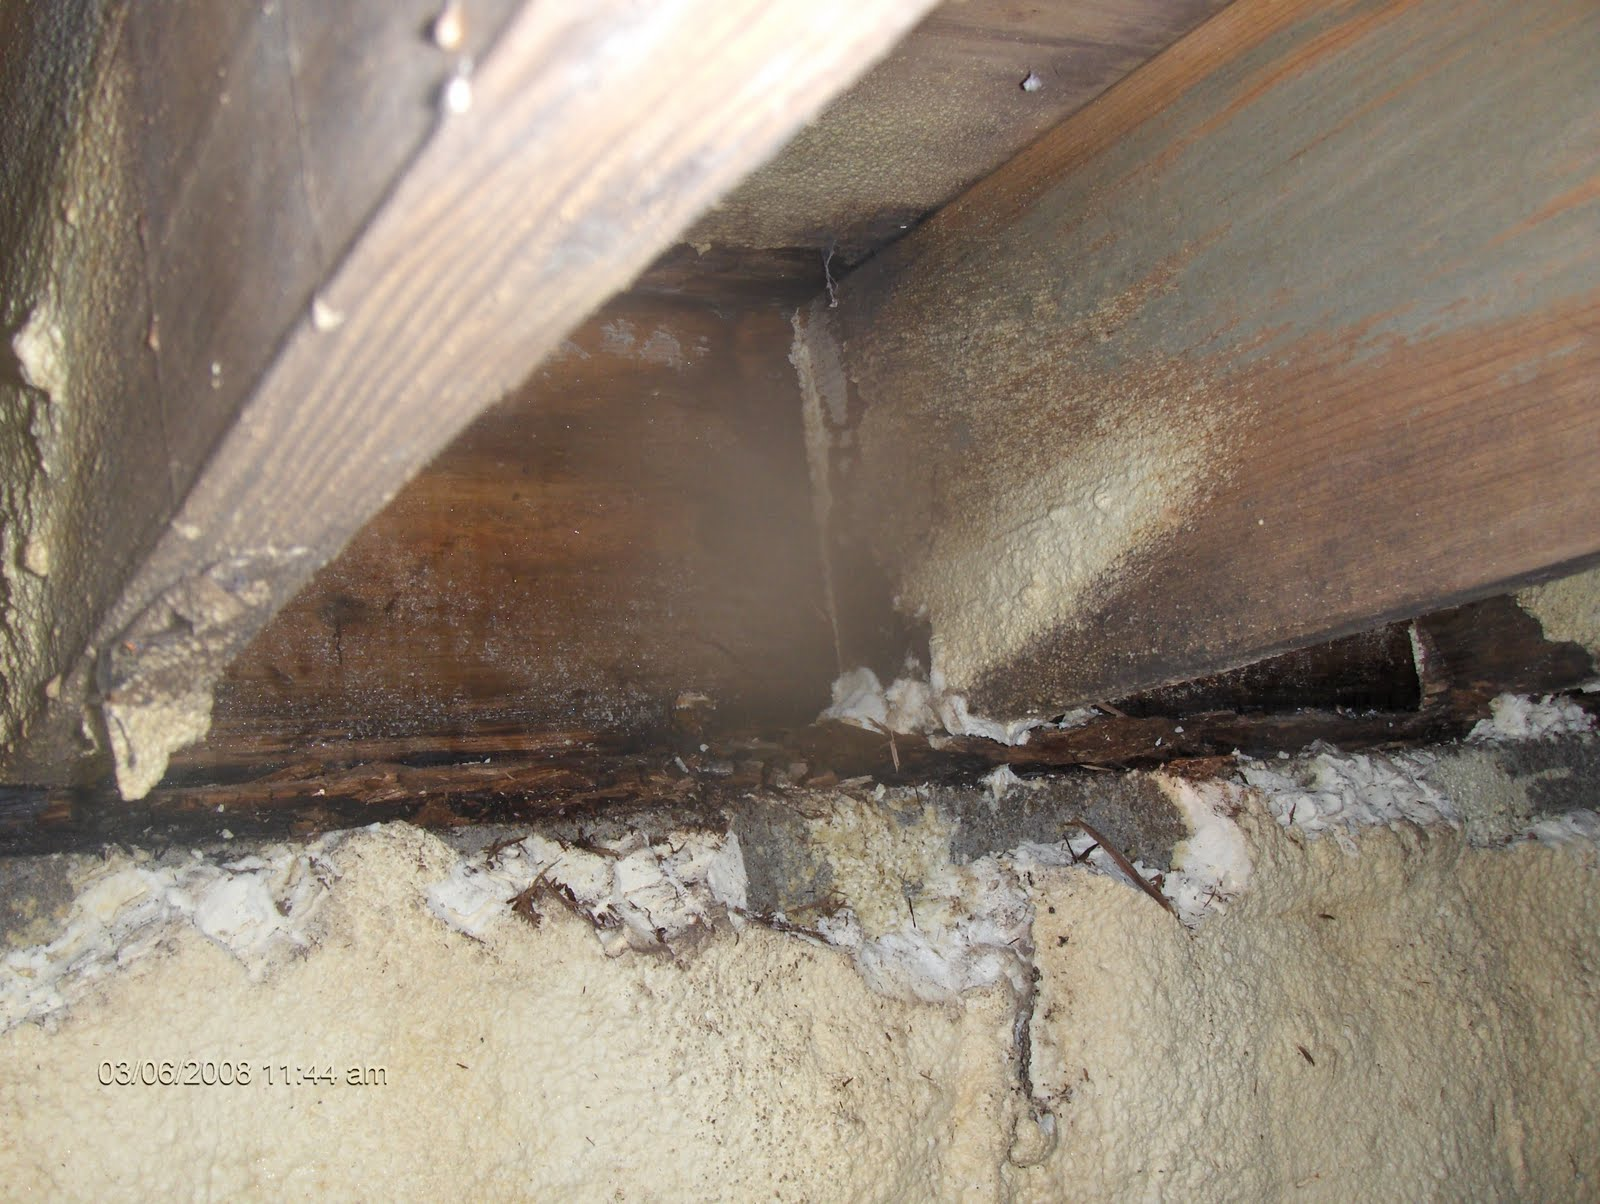 American Basement Solutions Do not spray foam your crawlspace